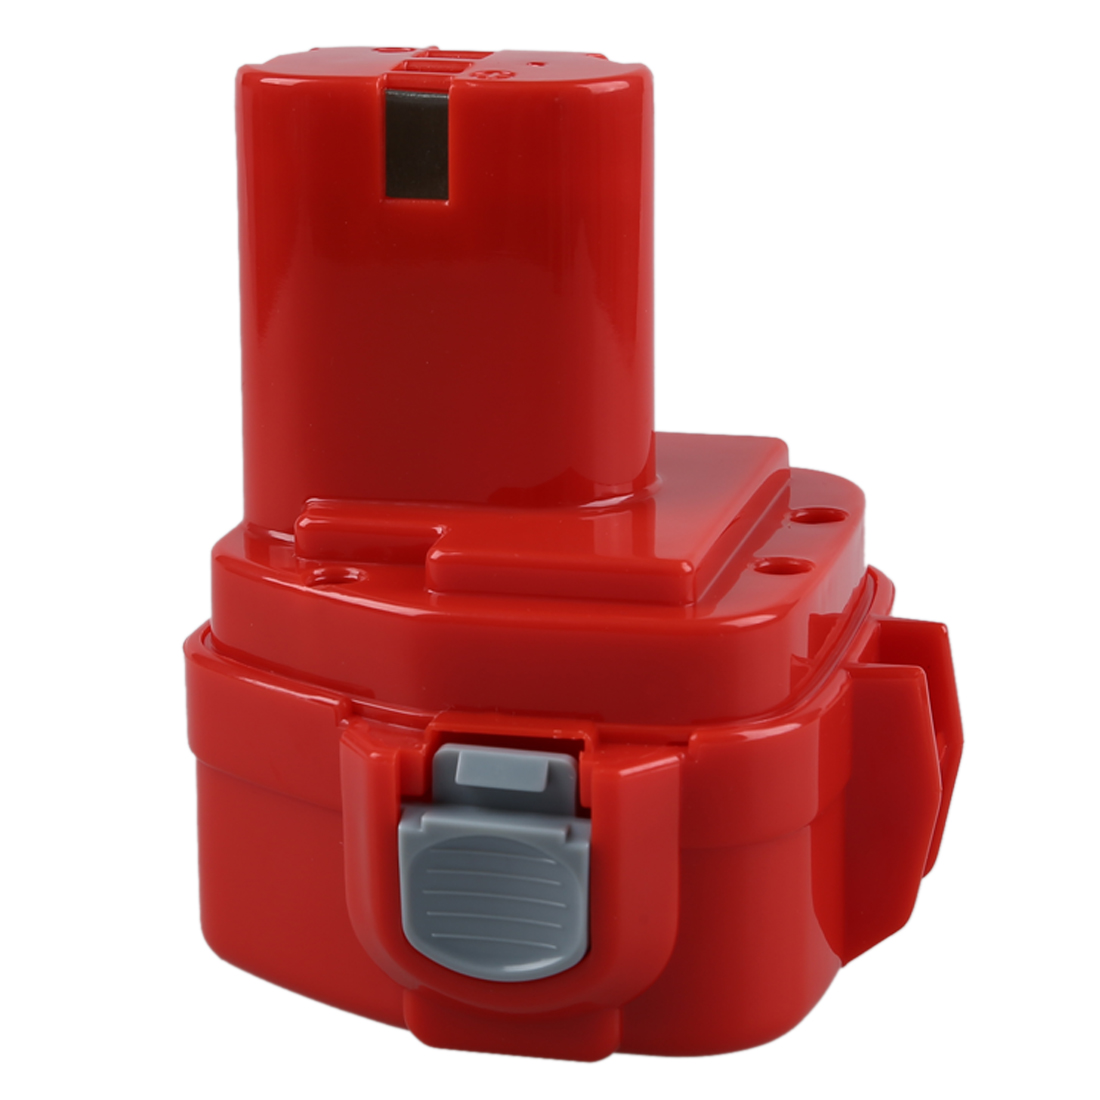 NEW 2.0AH 12V Power Tool Battery for MAKITA Red ...